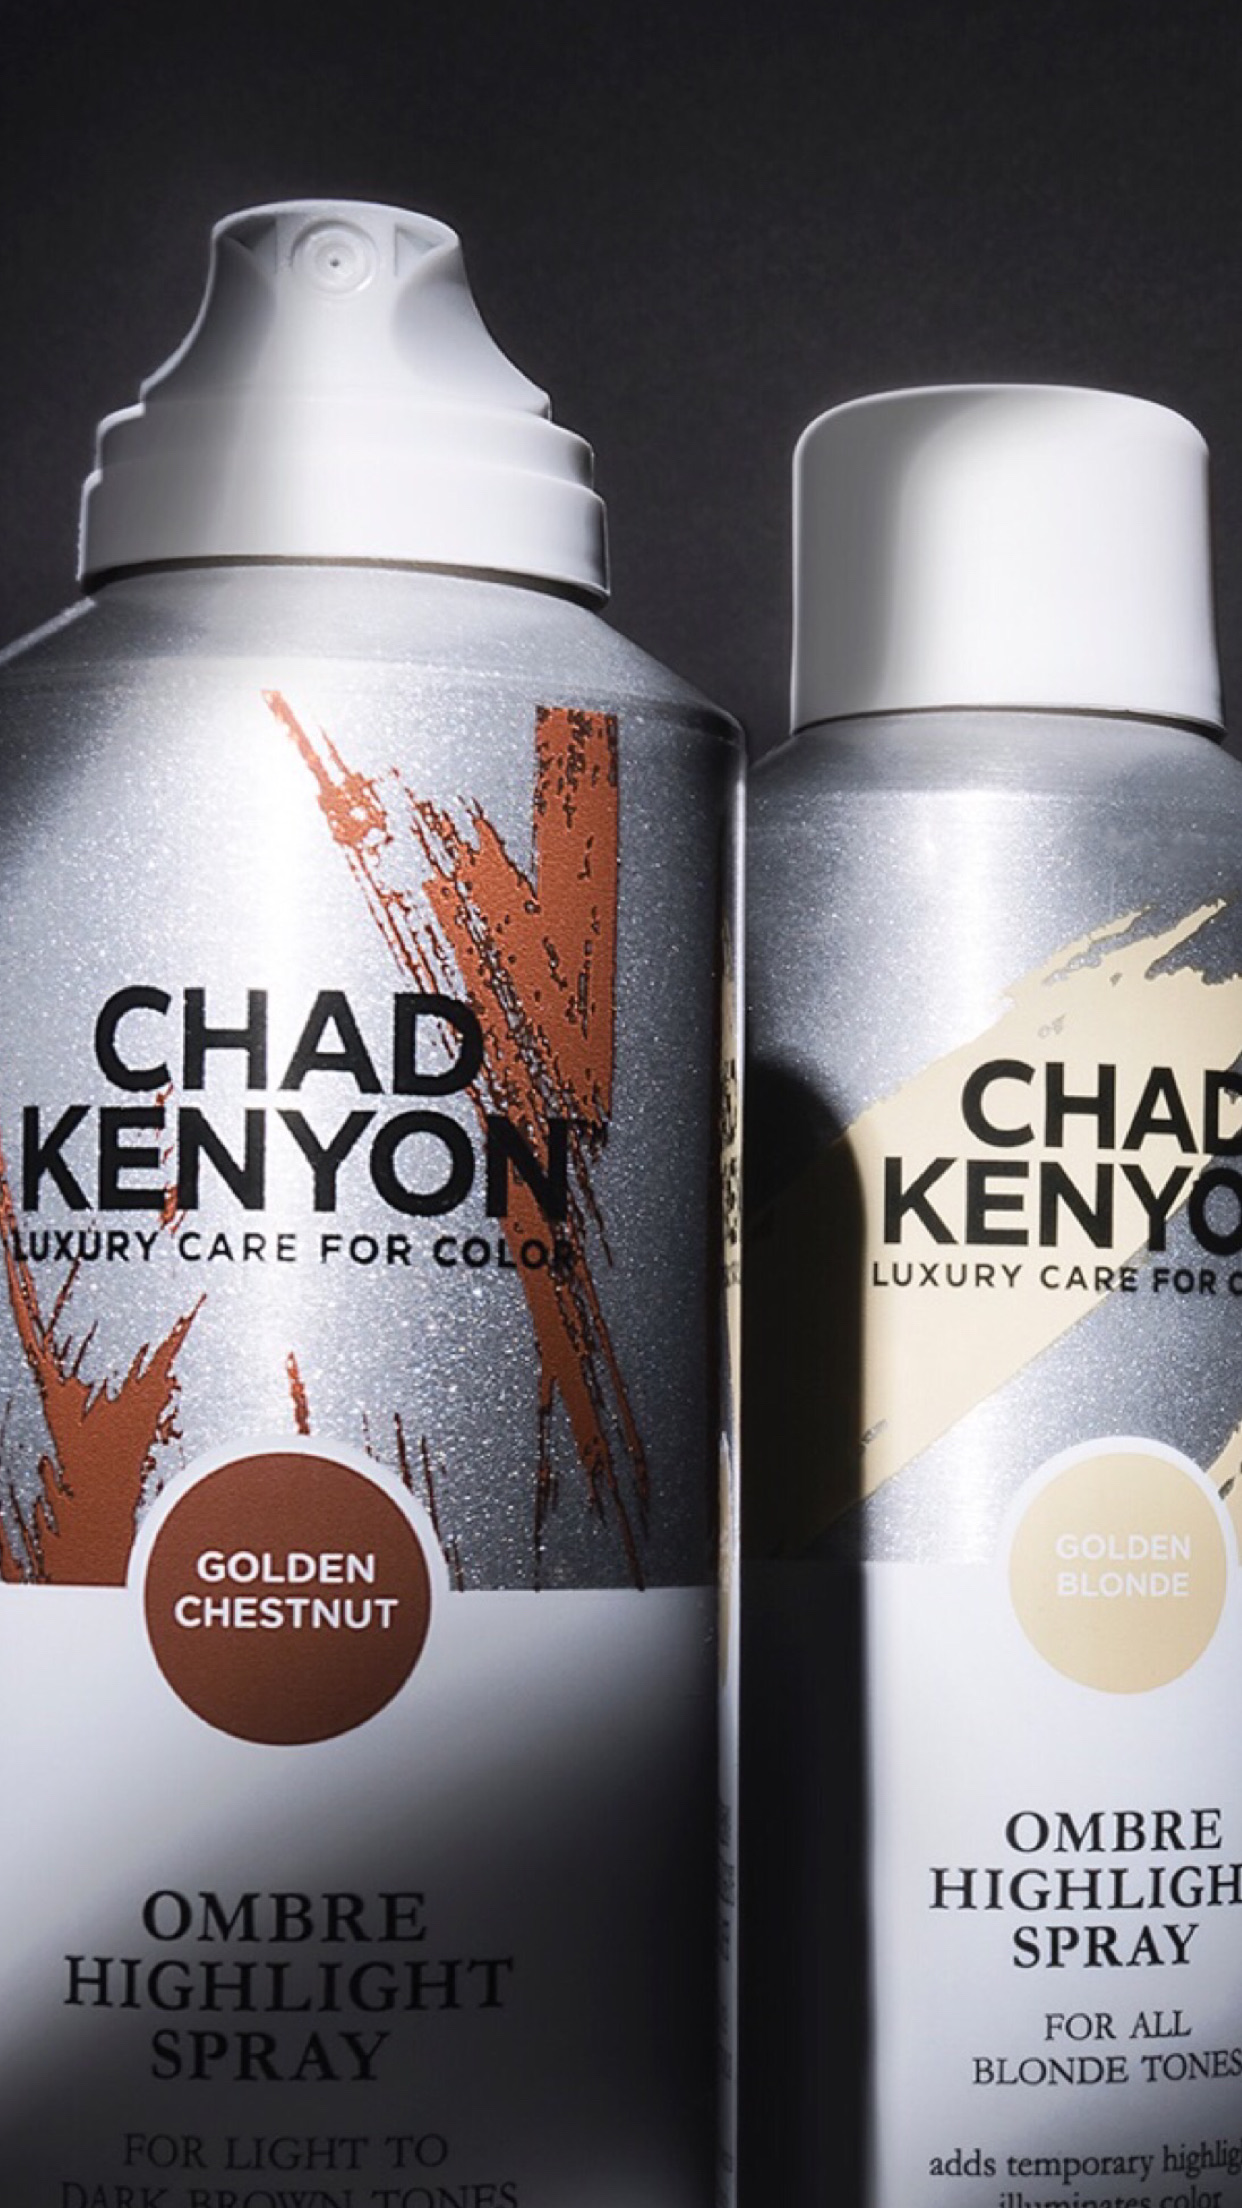 at NORDSTROM CHAD KENYON Luxury Care for Color